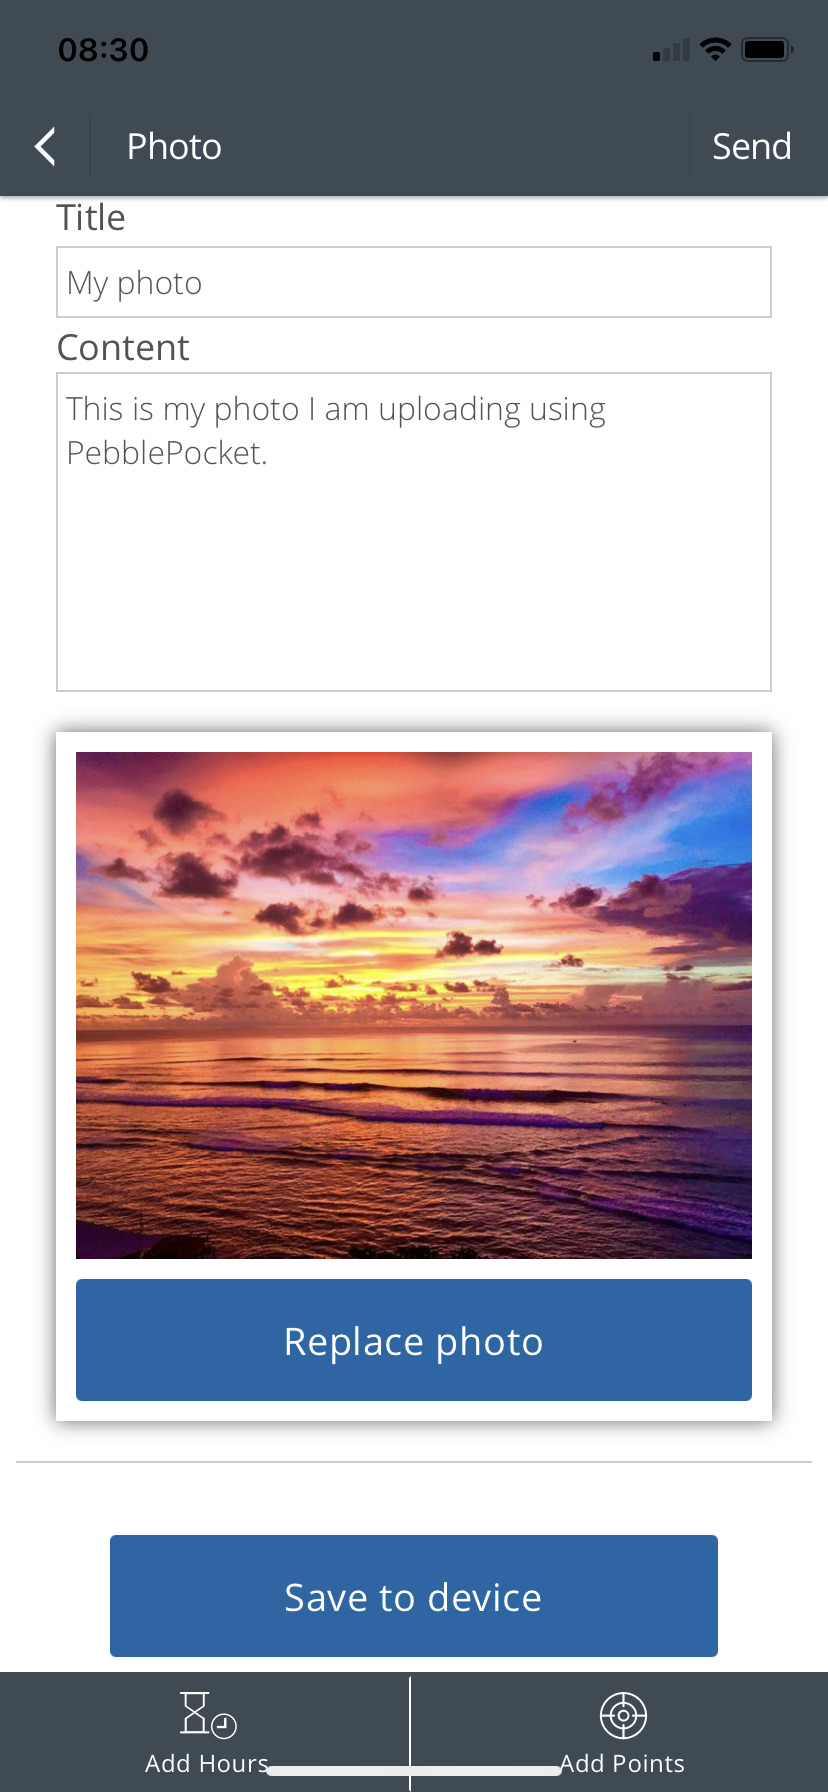 Form for adding title and details to a photo upload